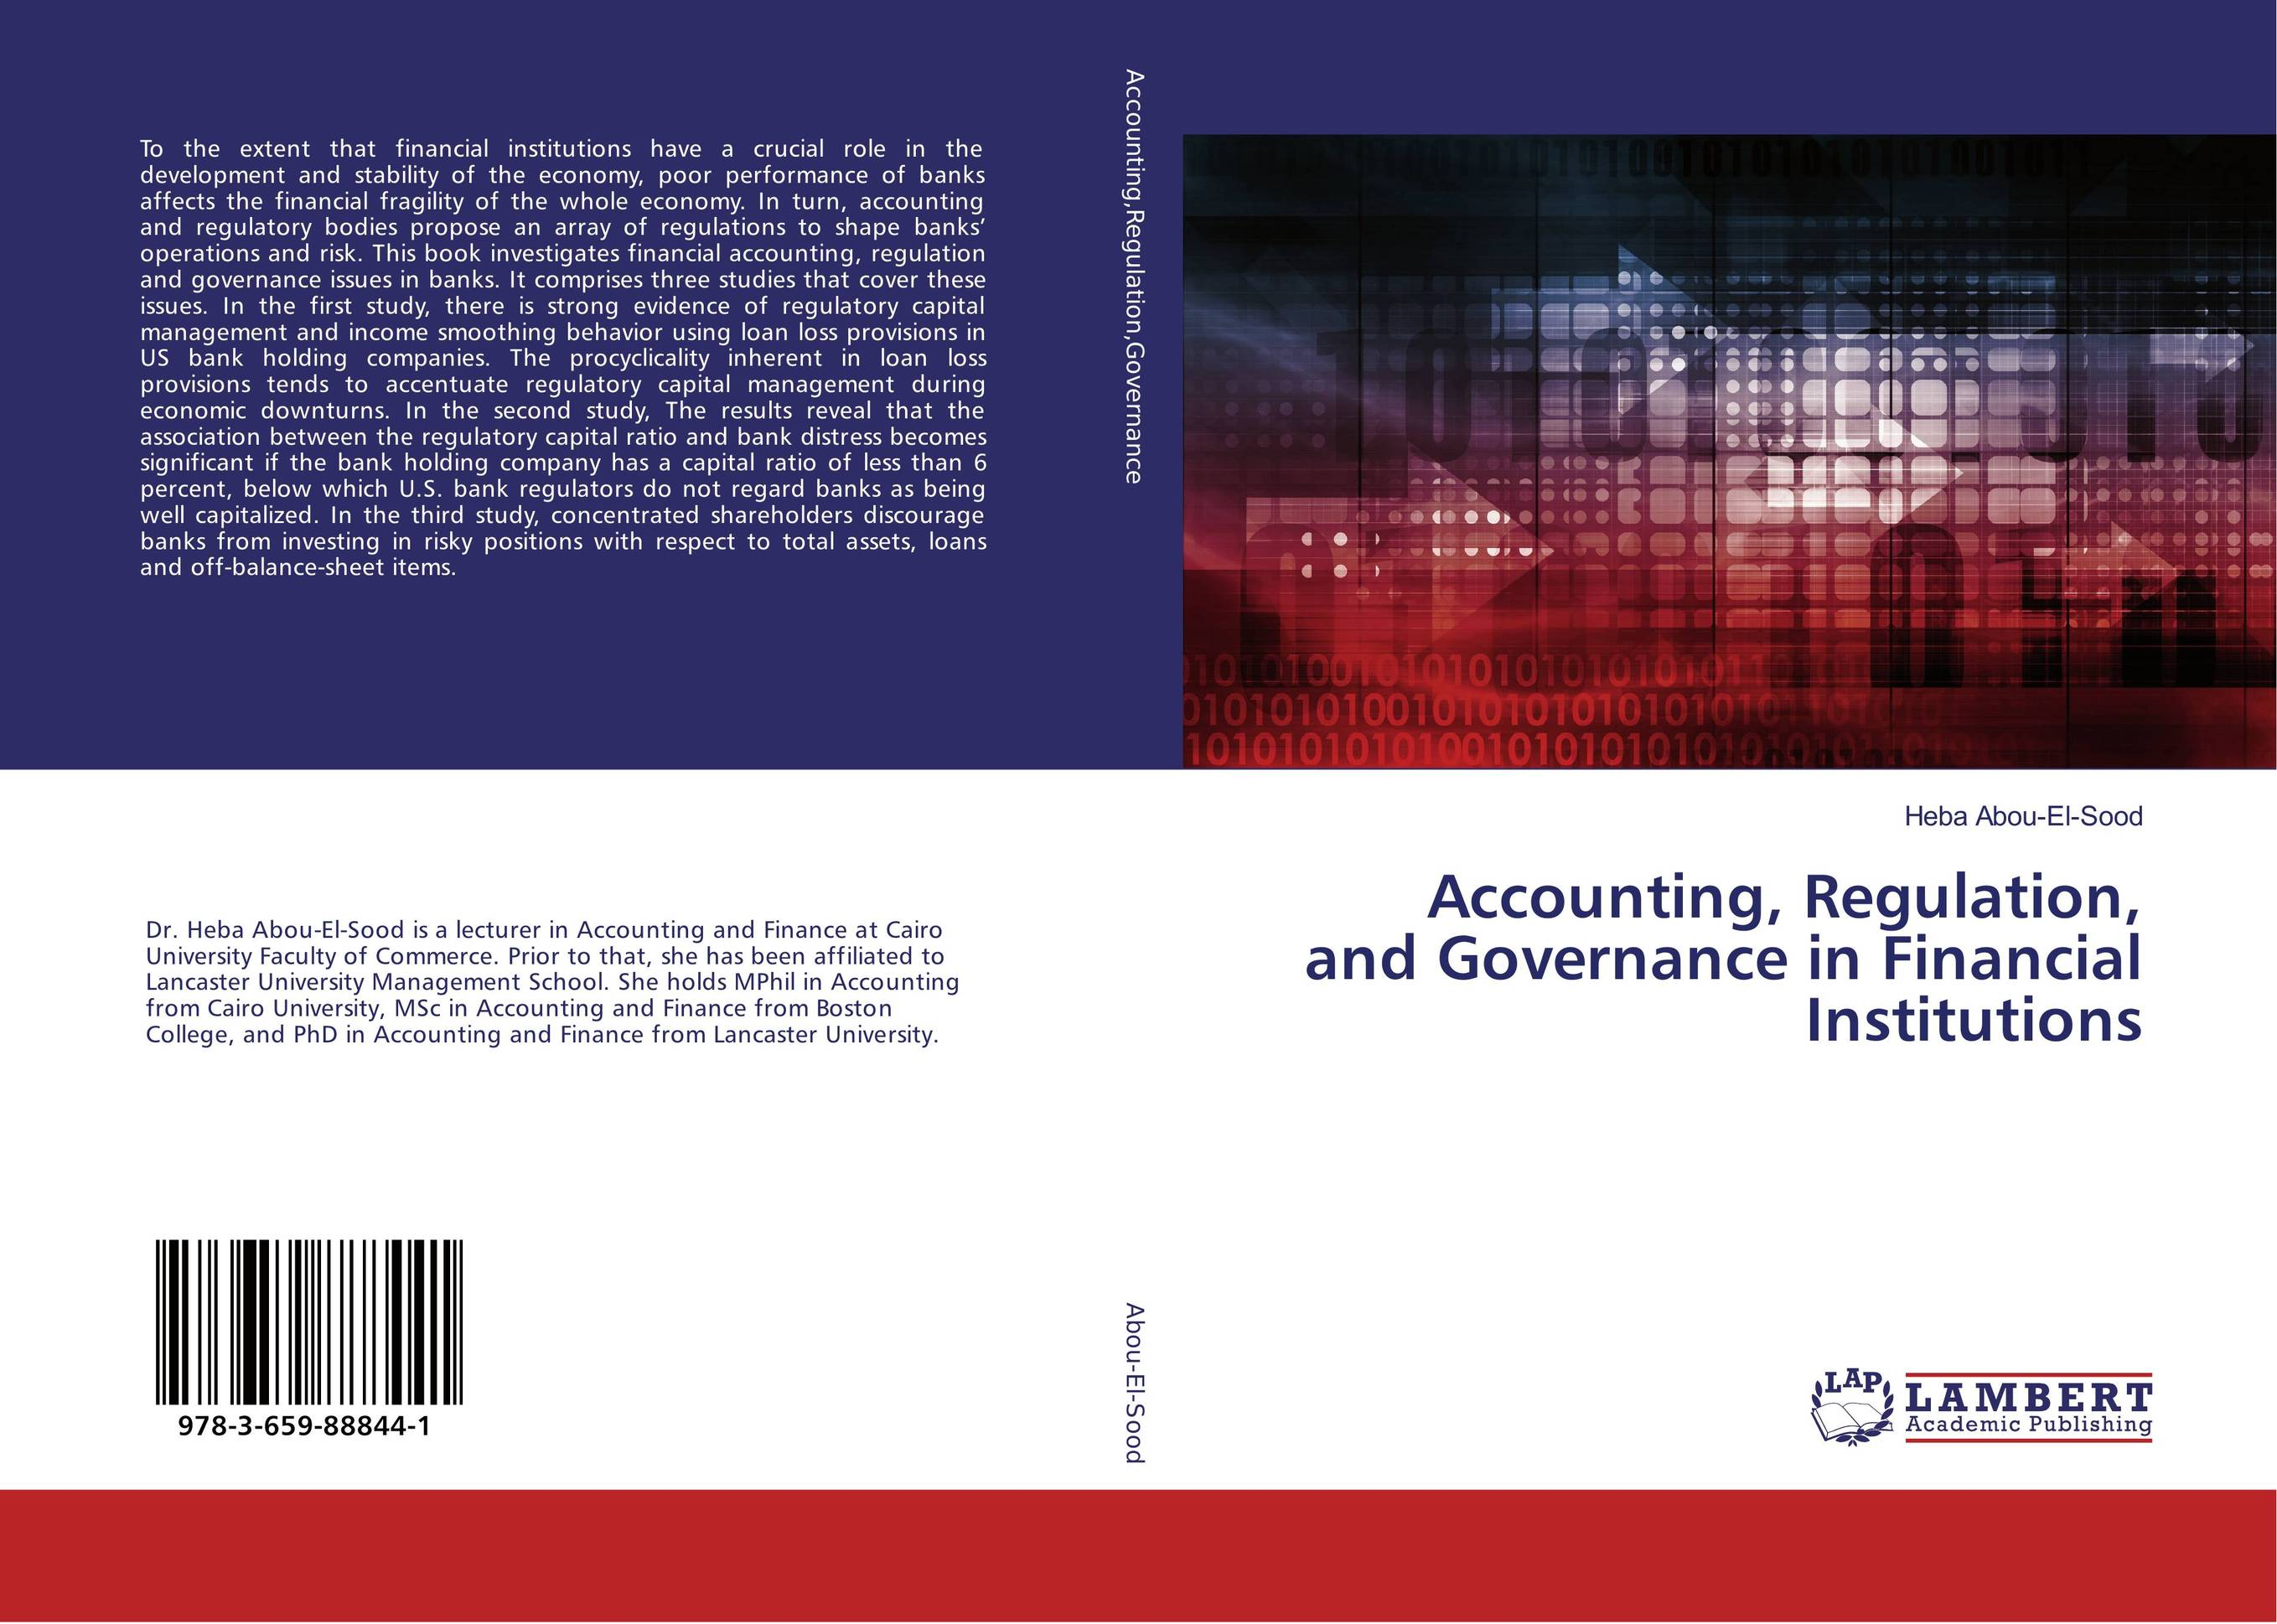 Accounting, Regulation, and Governance in Financial Institutions ноутбук msi gs43vr 7re 094ru 9s7 14a332 094 9s7 14a332 094